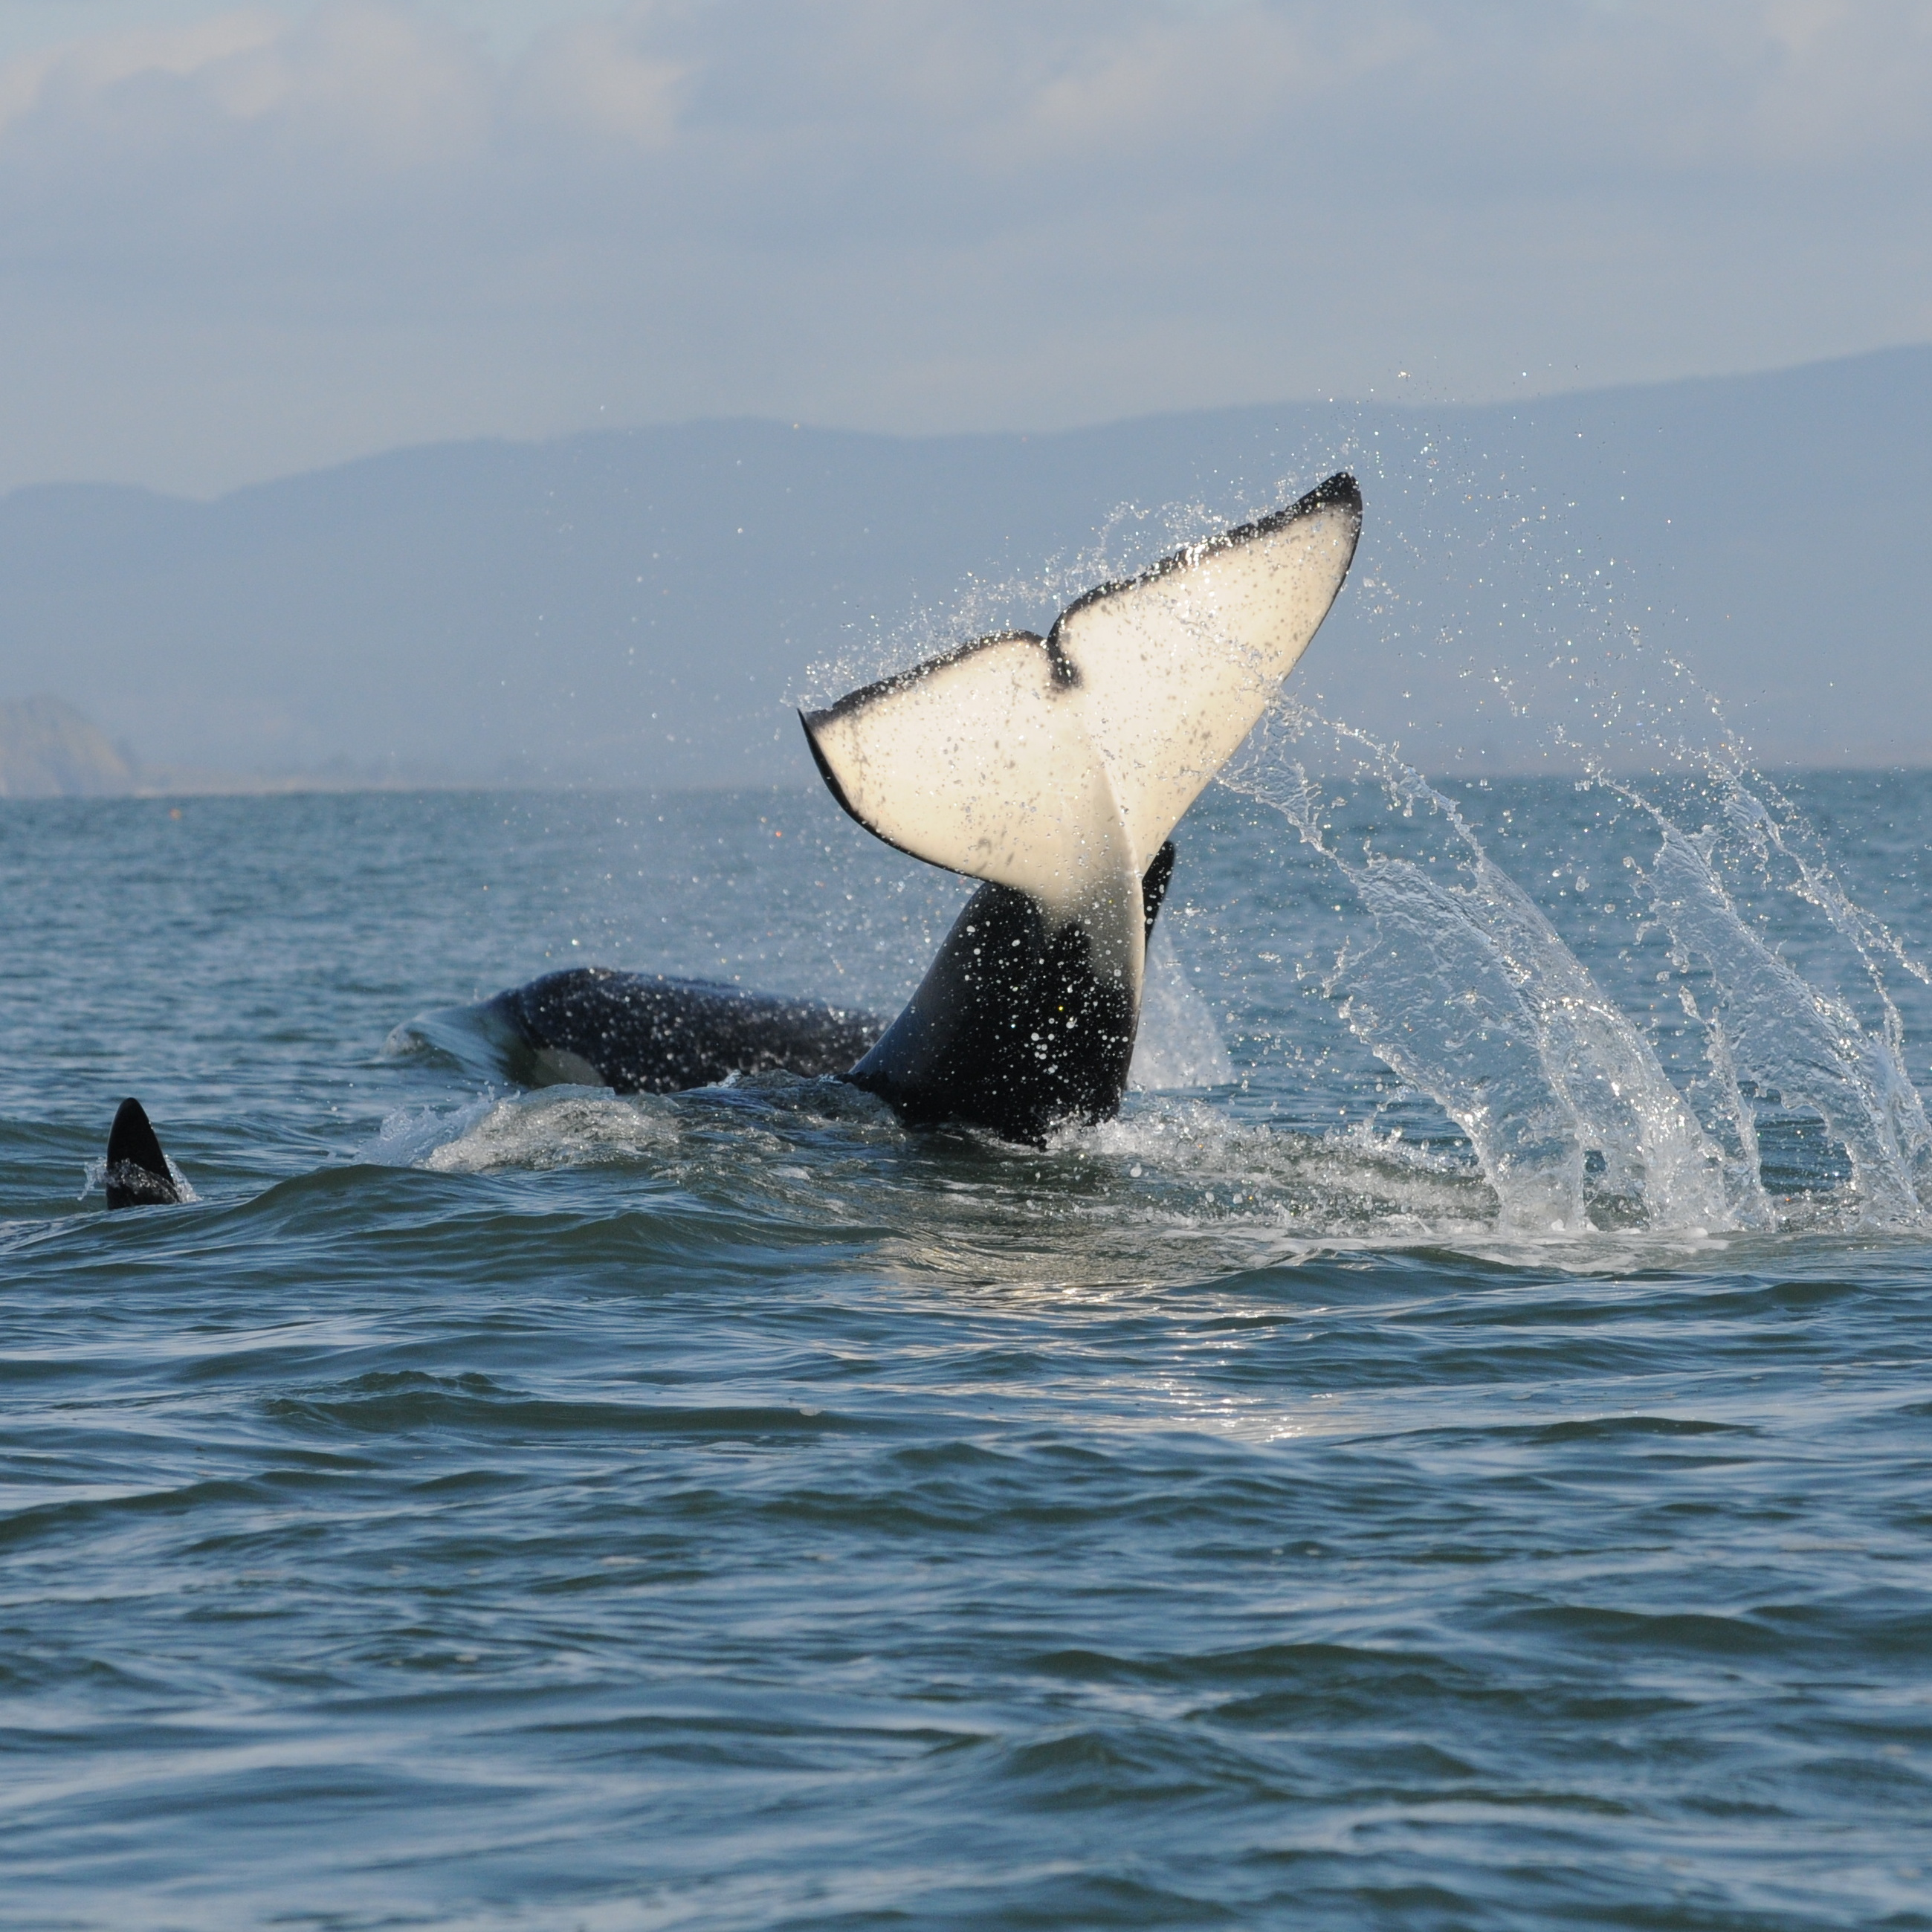 An orca flips its tail in the air. Photo by Candice Emmons/NOAA Fisheries.